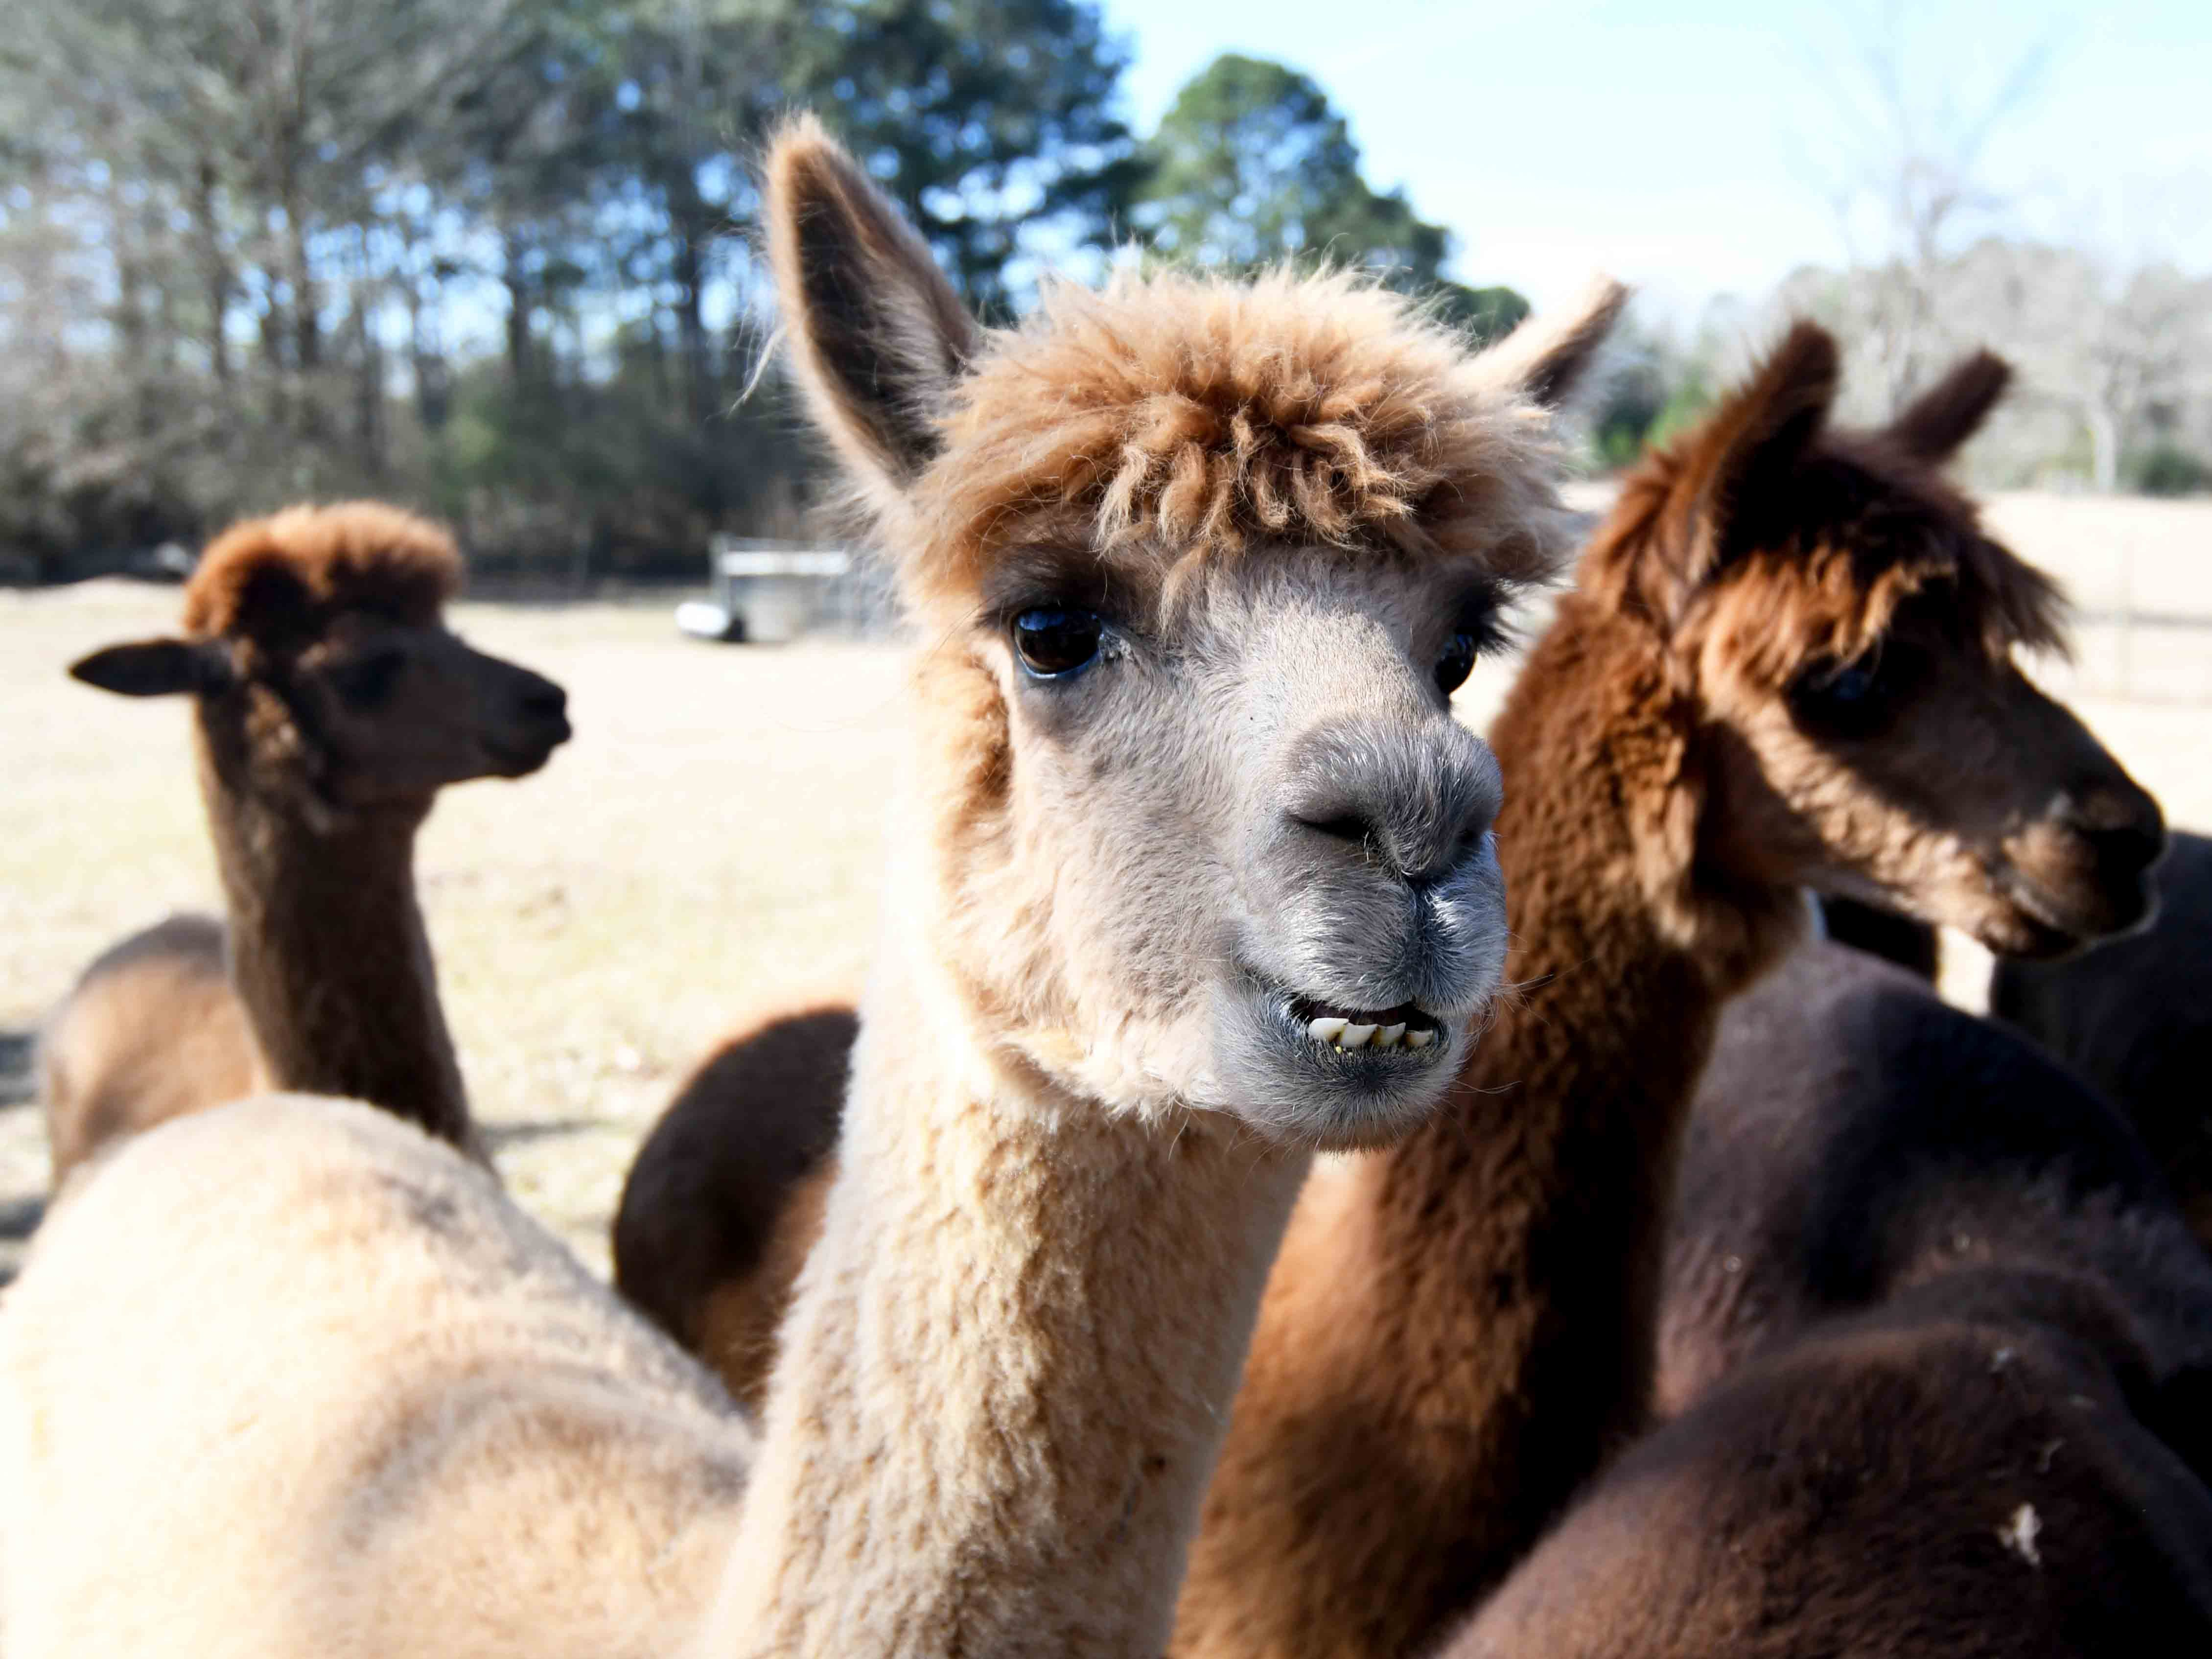 A Stroka-Gene-Us Alpaca Farm is located in Stringer, Mississippi, about 65 miles from Hattiesburg.